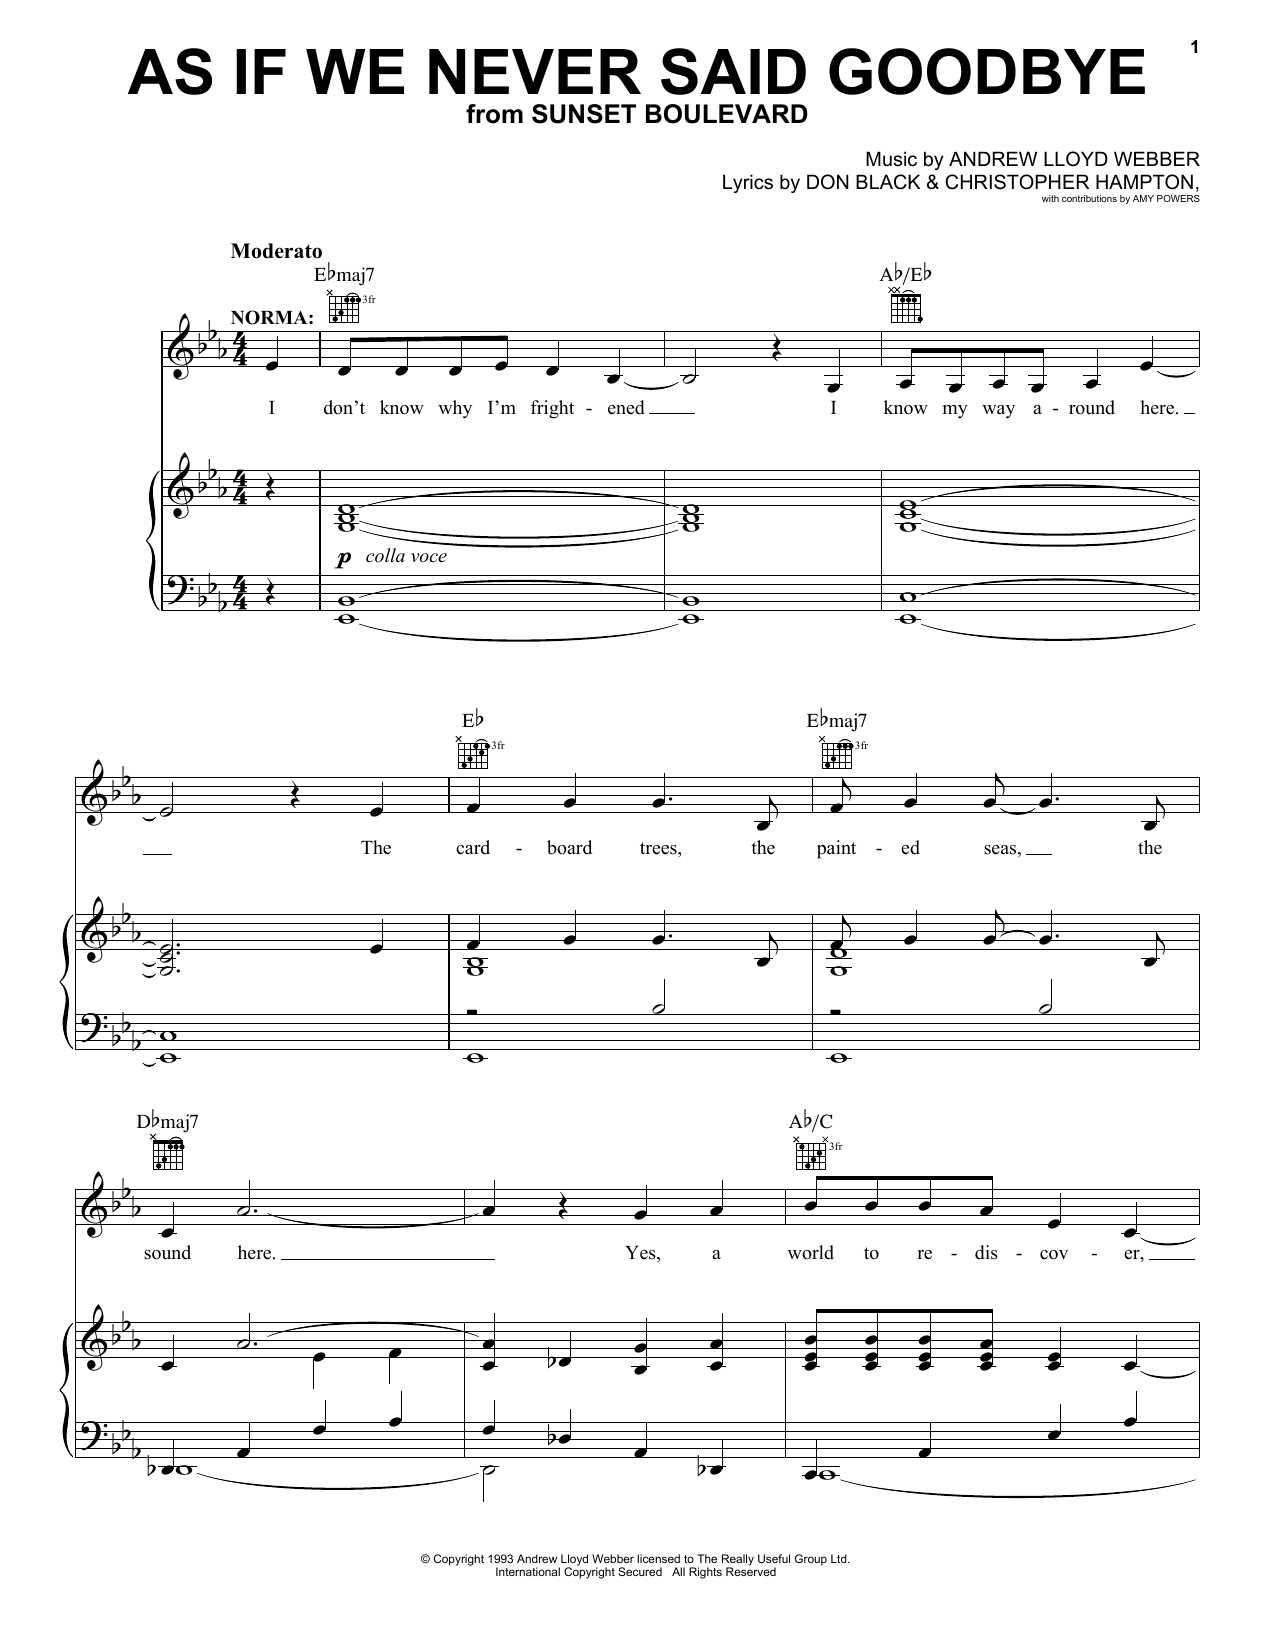 Andrew Lloyd Webber As If We Never Said Goodbye sheet music notes and chords